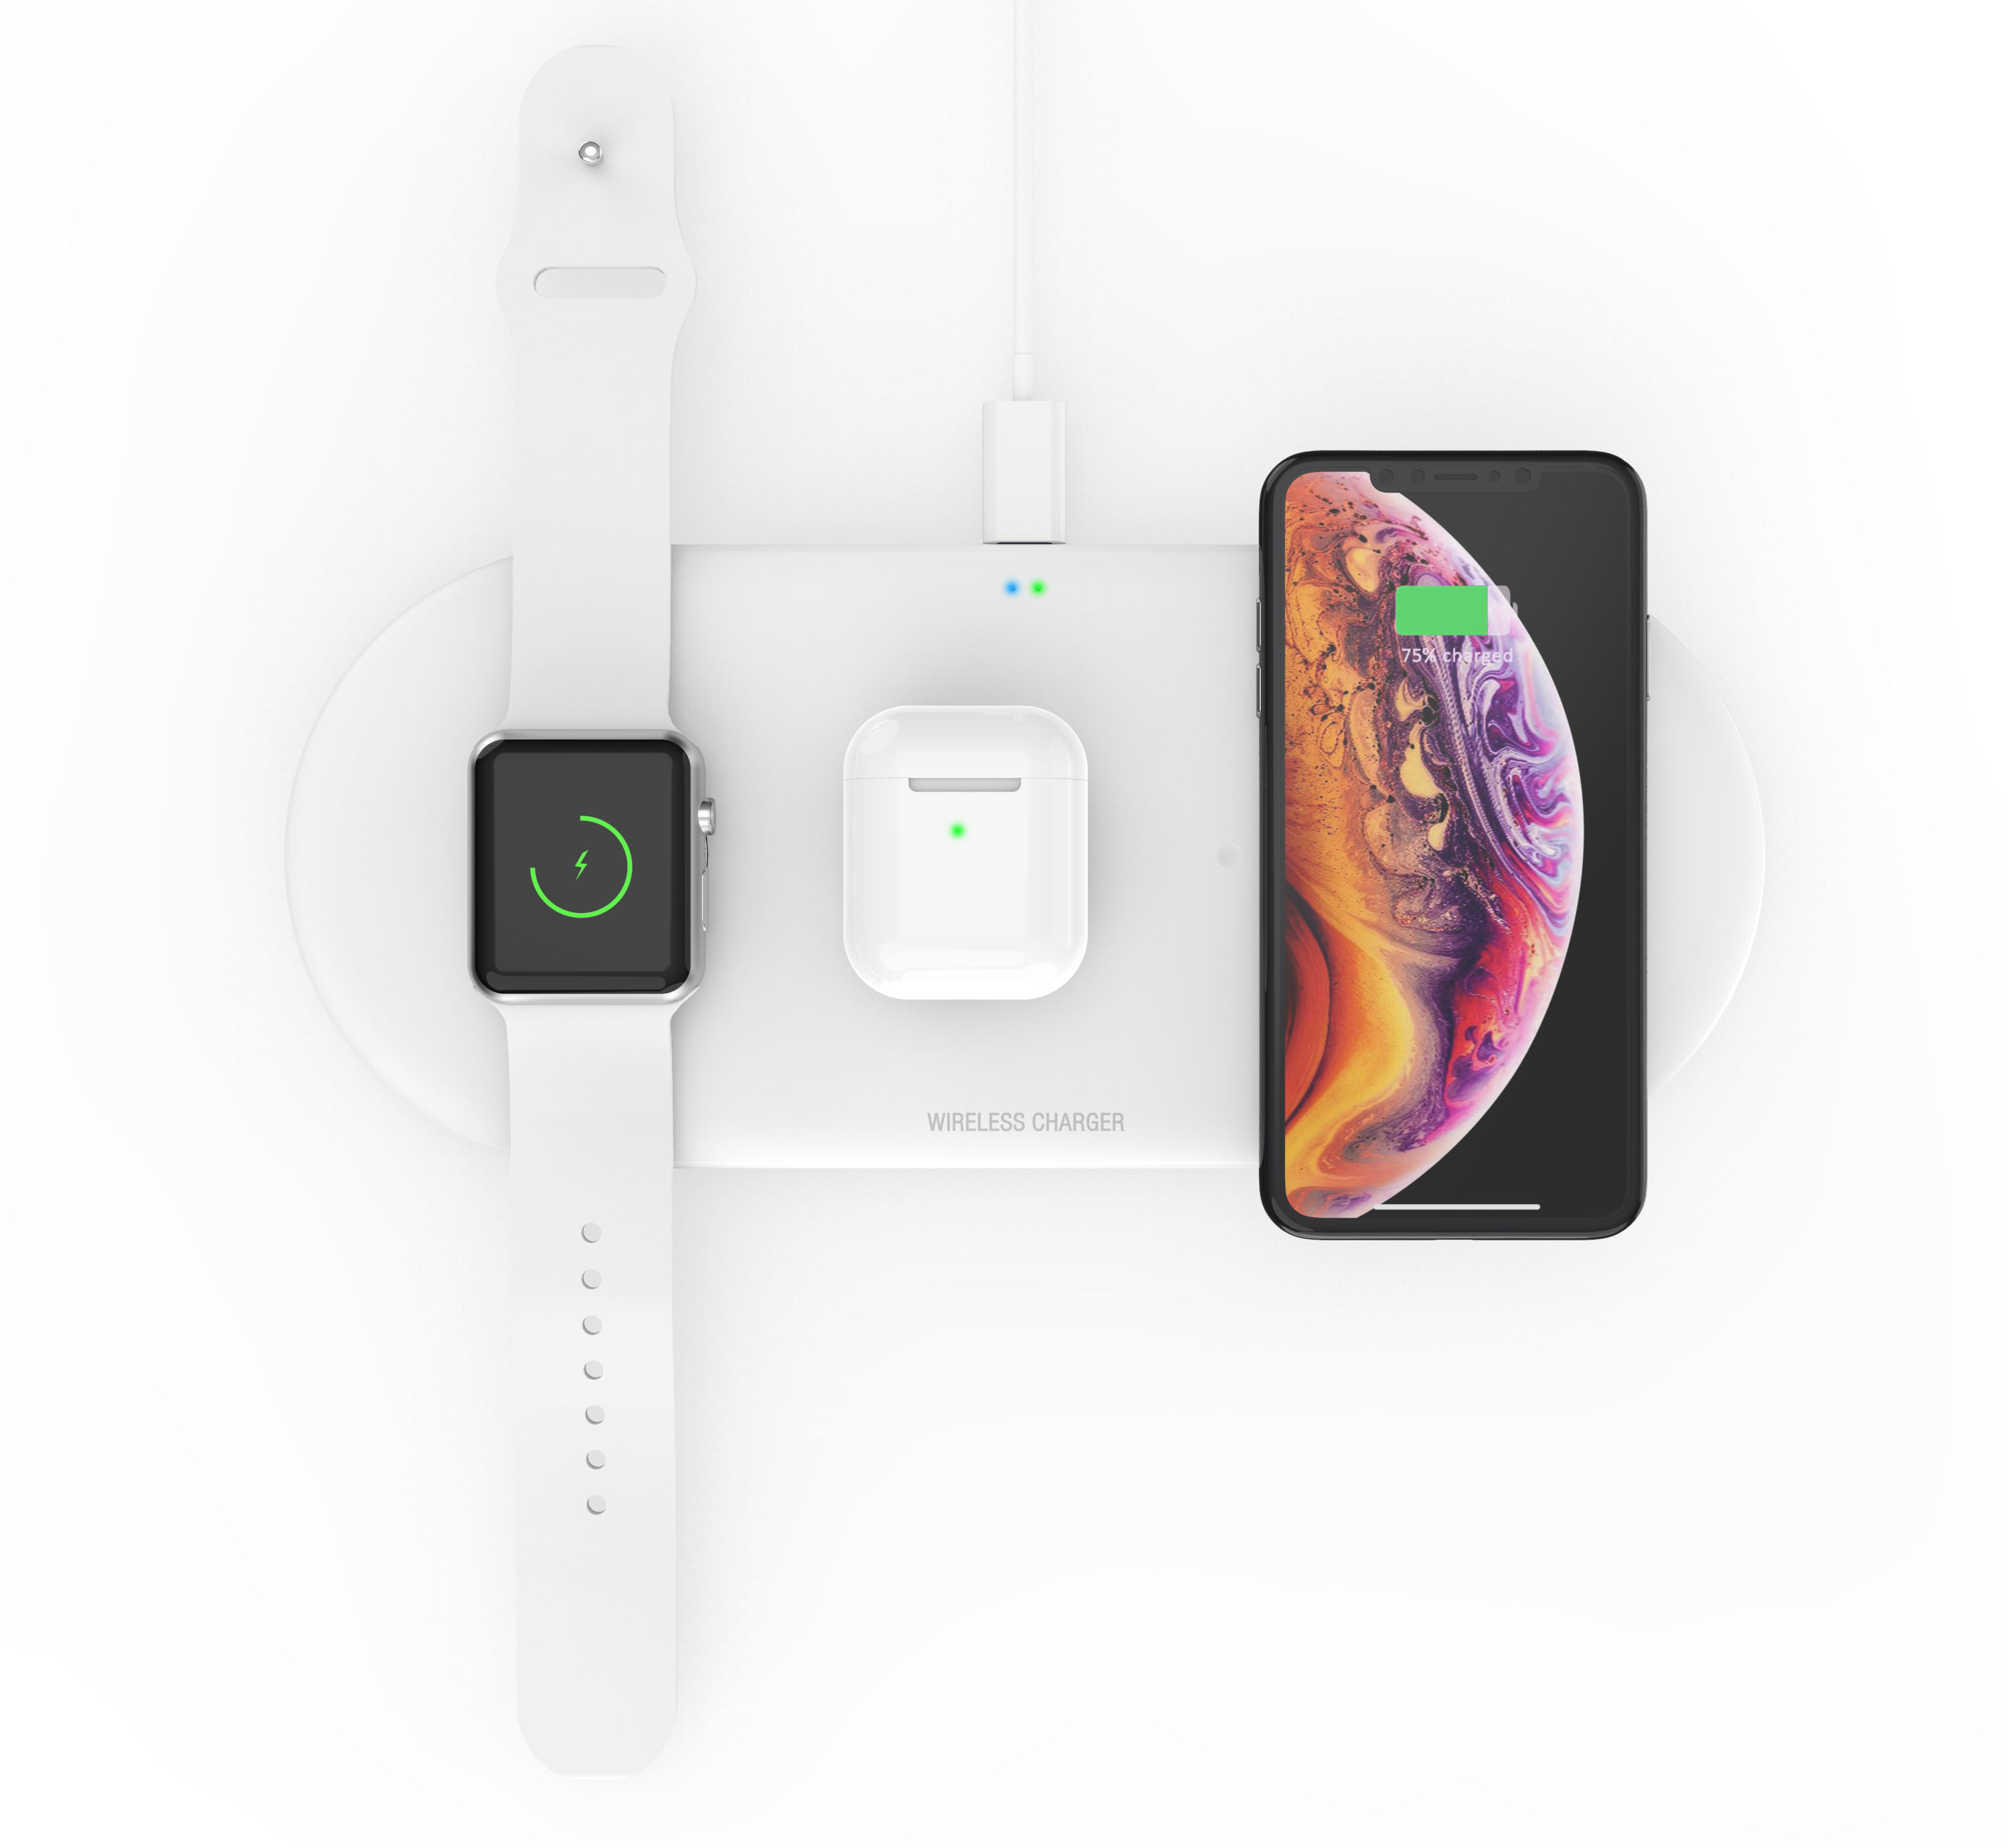 New product ideas 2021 3 in 1 wireless charger stand 10W wireless charging station for iphone for iwatch for Airpods